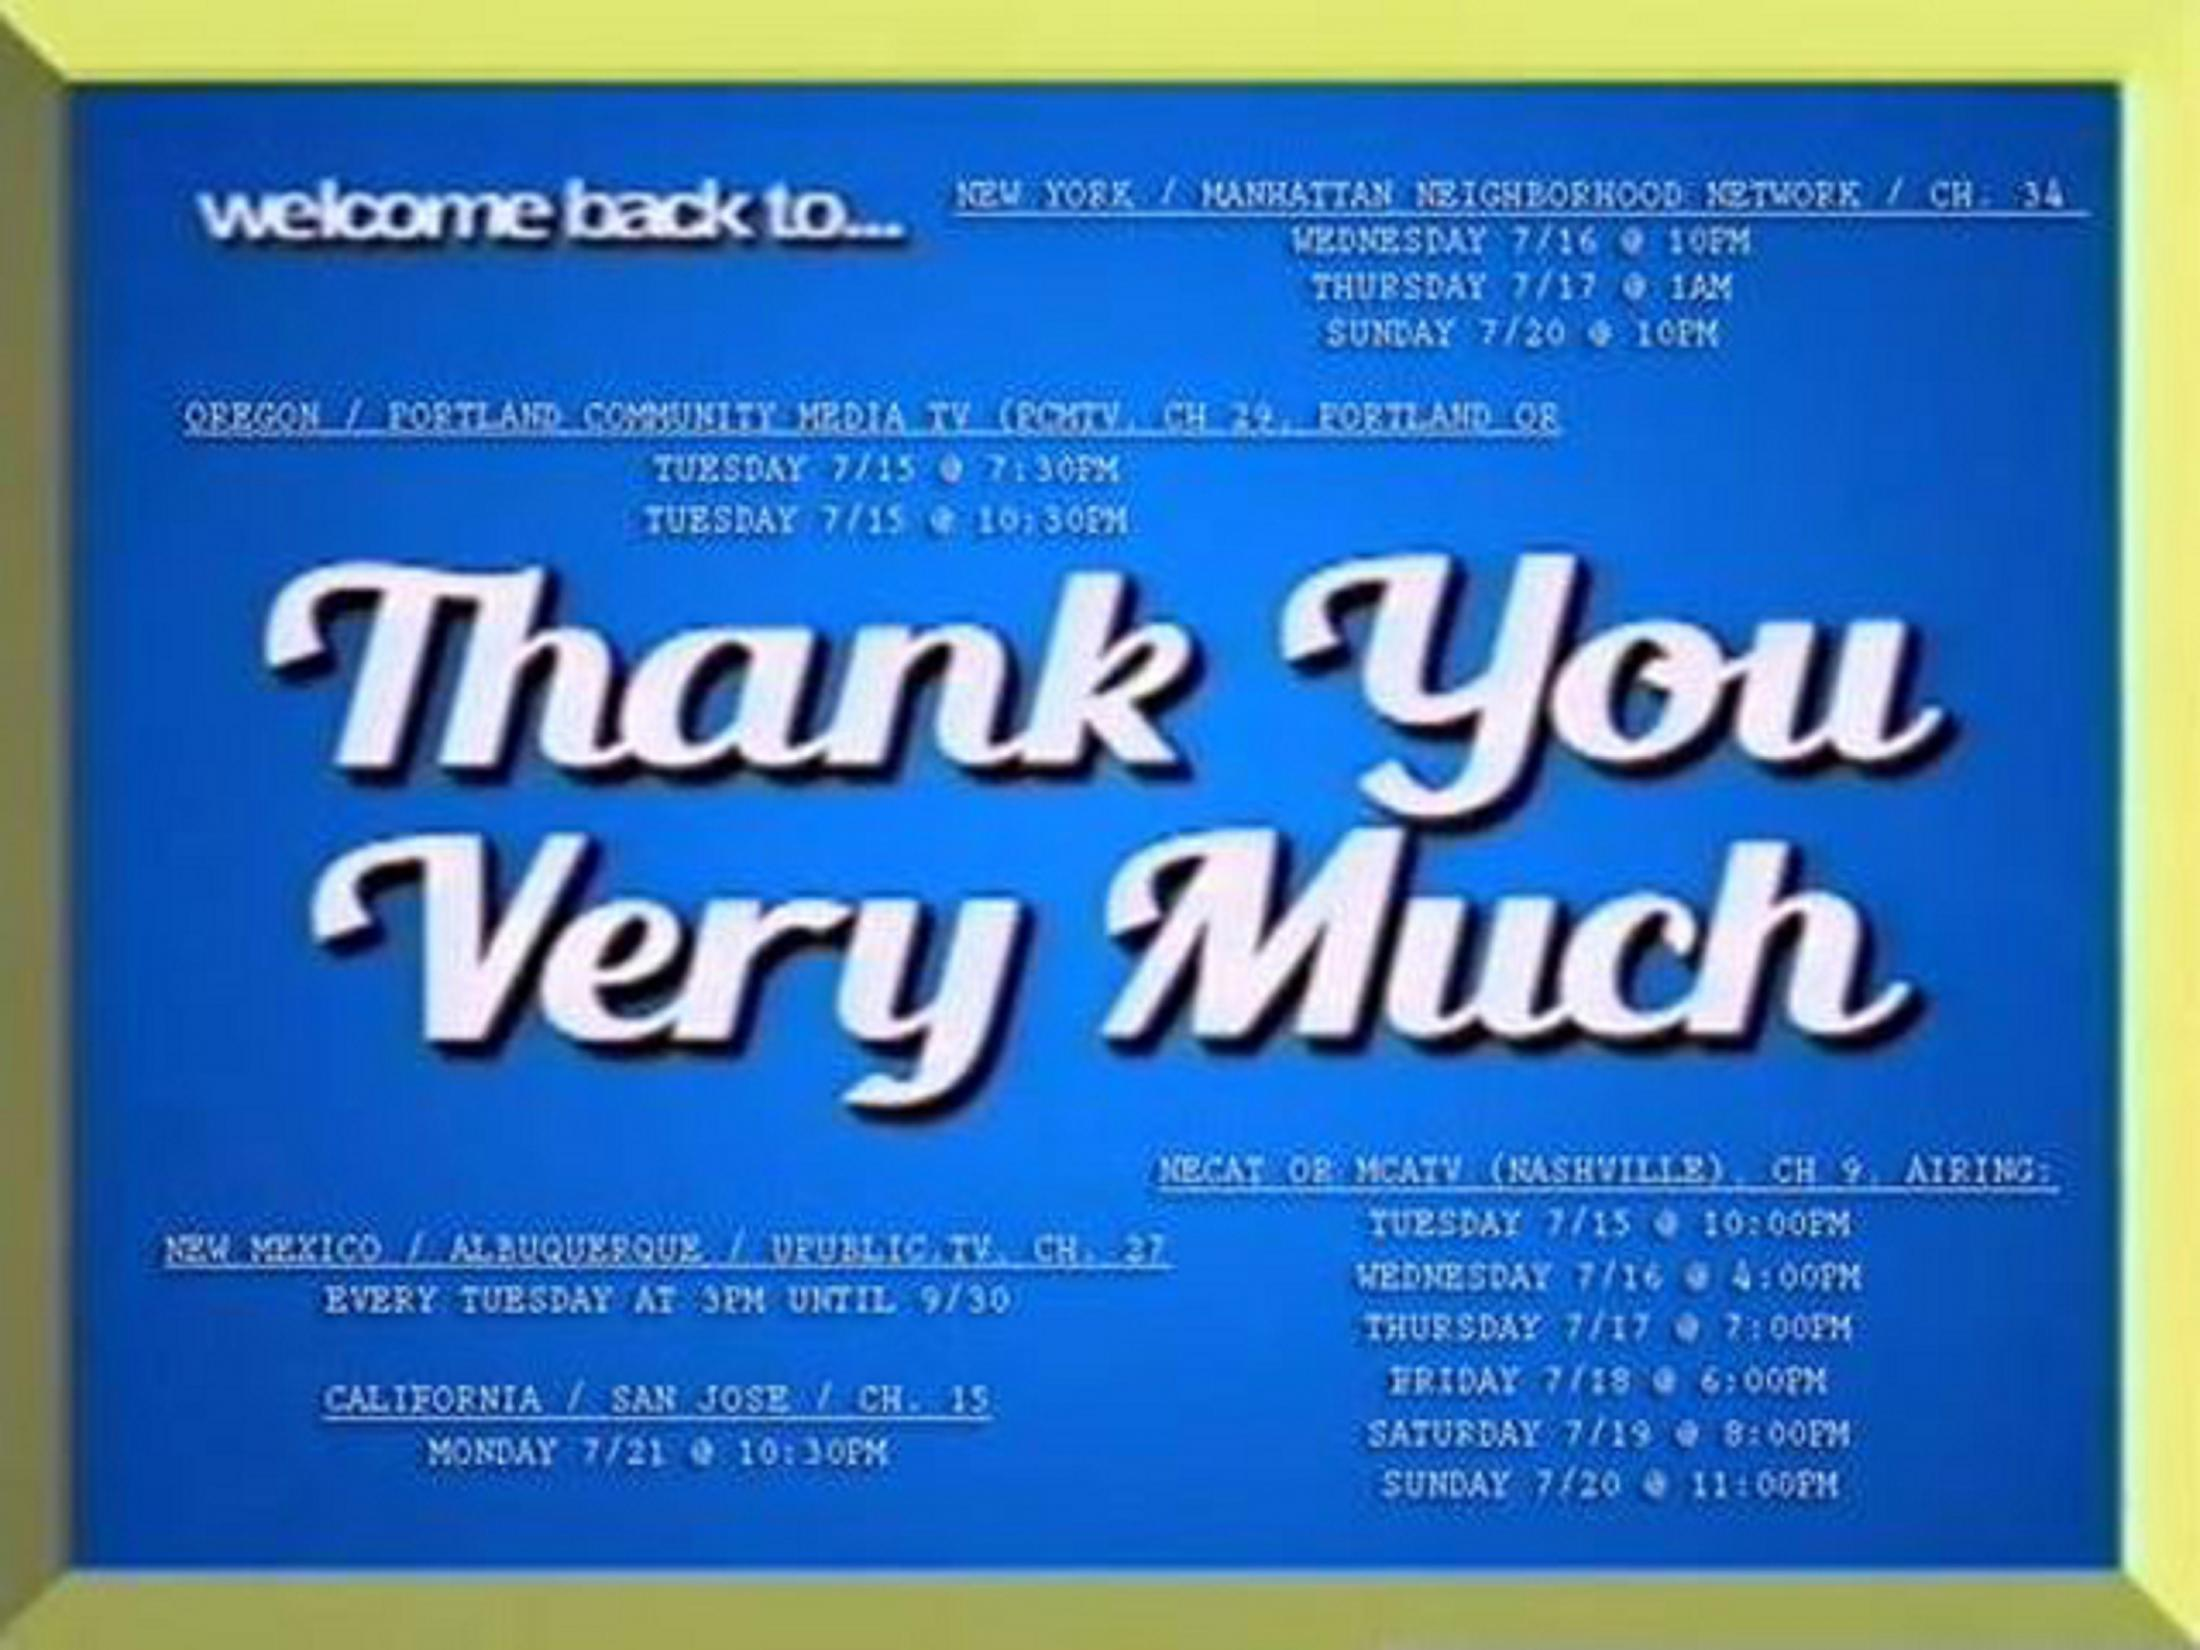 Thumbnail for Thank You Very Much